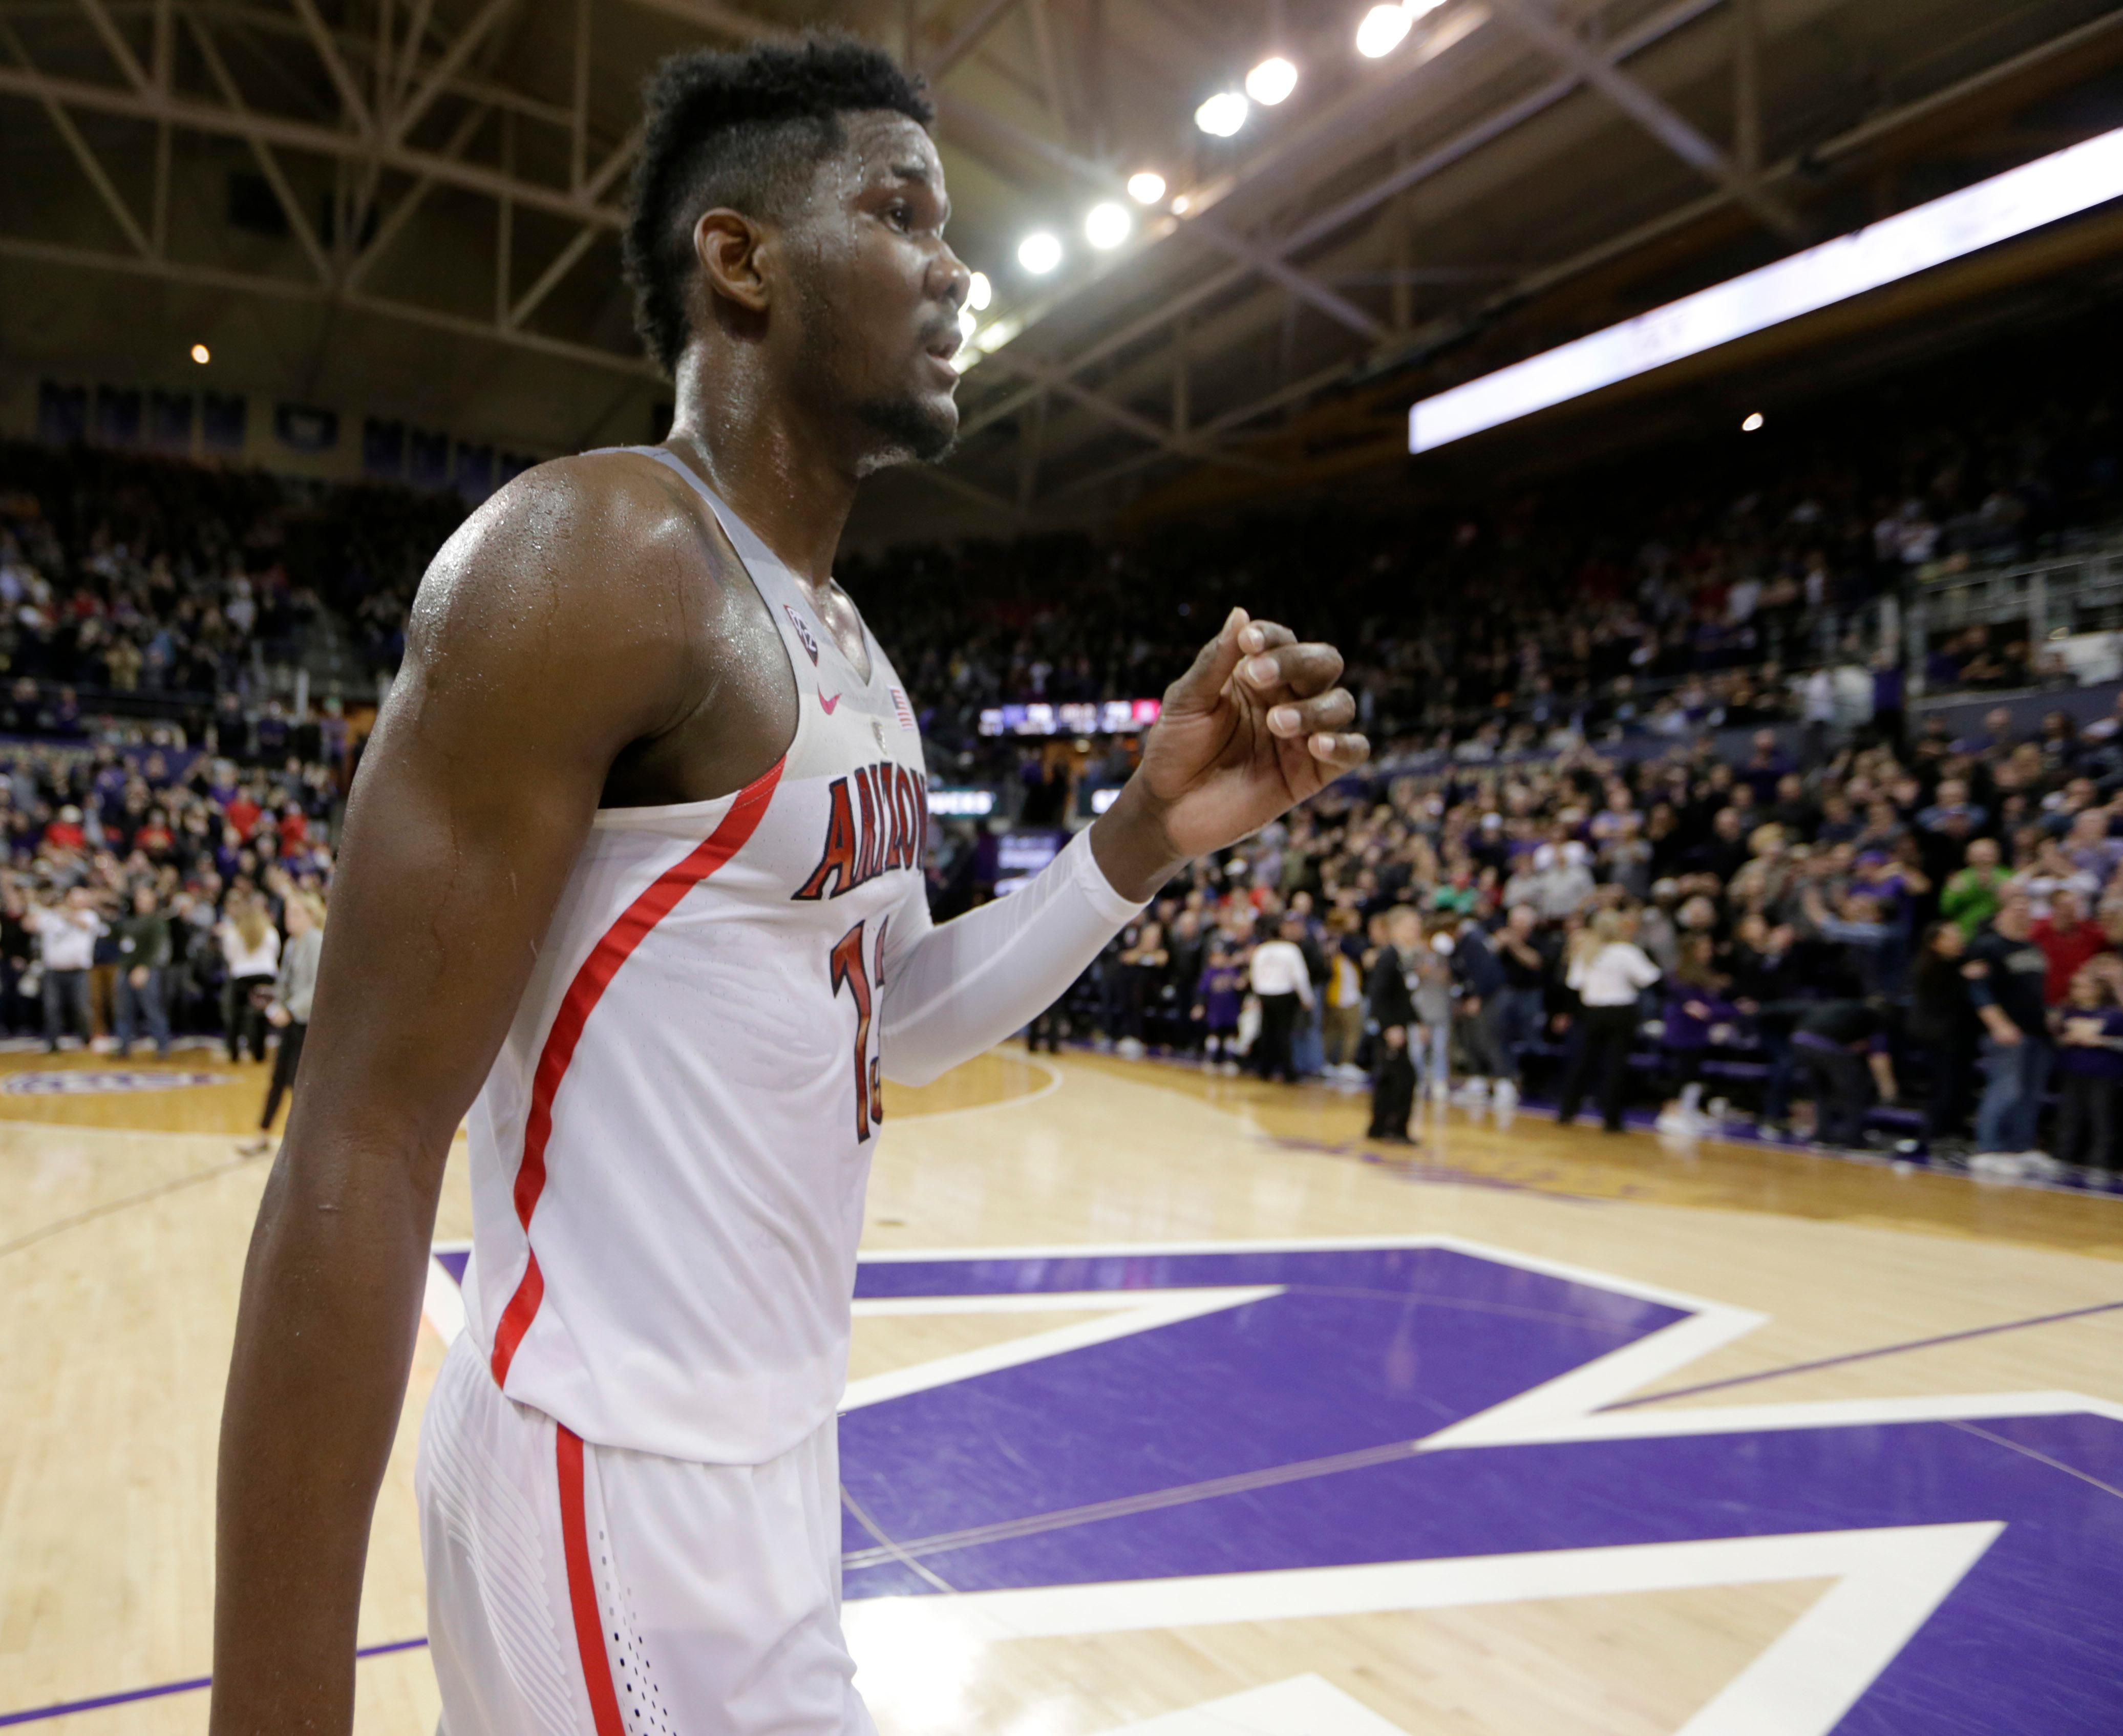 Arizona's Deandre Ayton walks off the court after the team's 78-75 loss to Washington in an NCAA college basketball game Saturday, Feb. 3, 2018, in Seattle. (AP Photo/John Froschauer)